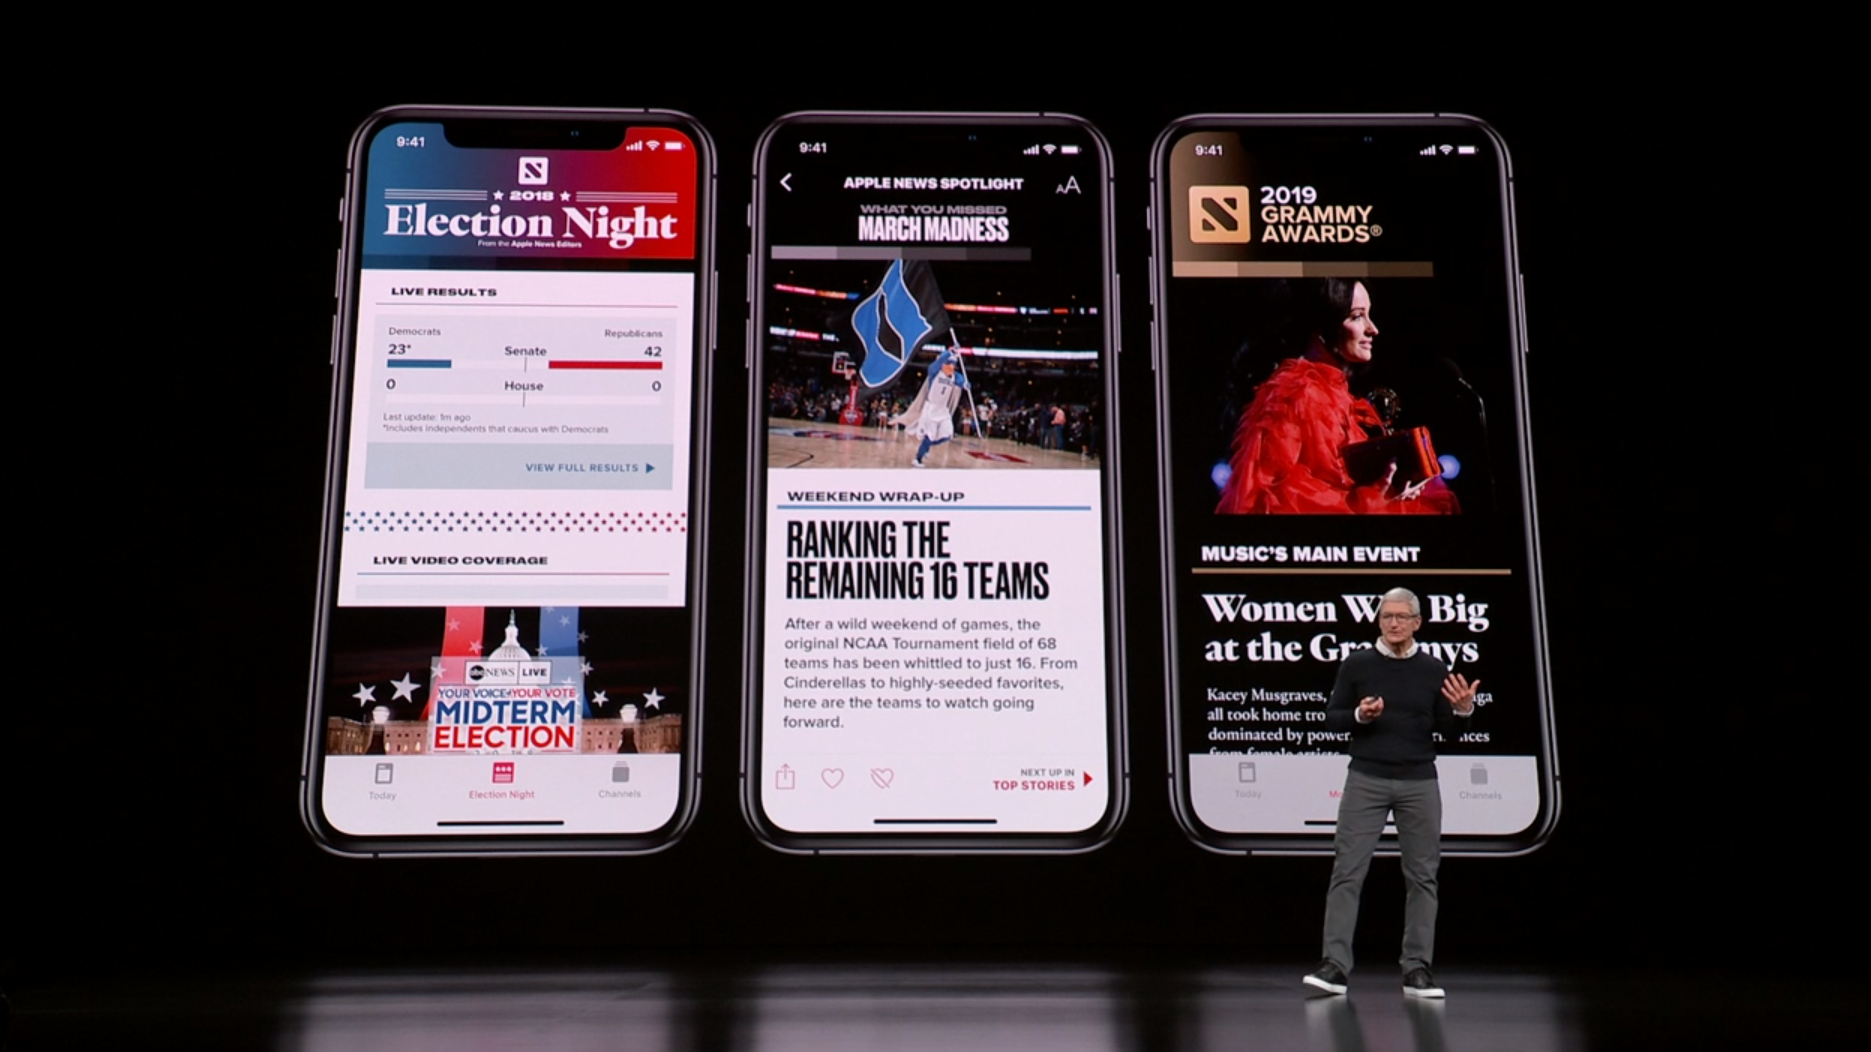 O Apple News+ vai custar 9,99 dólares / Apple